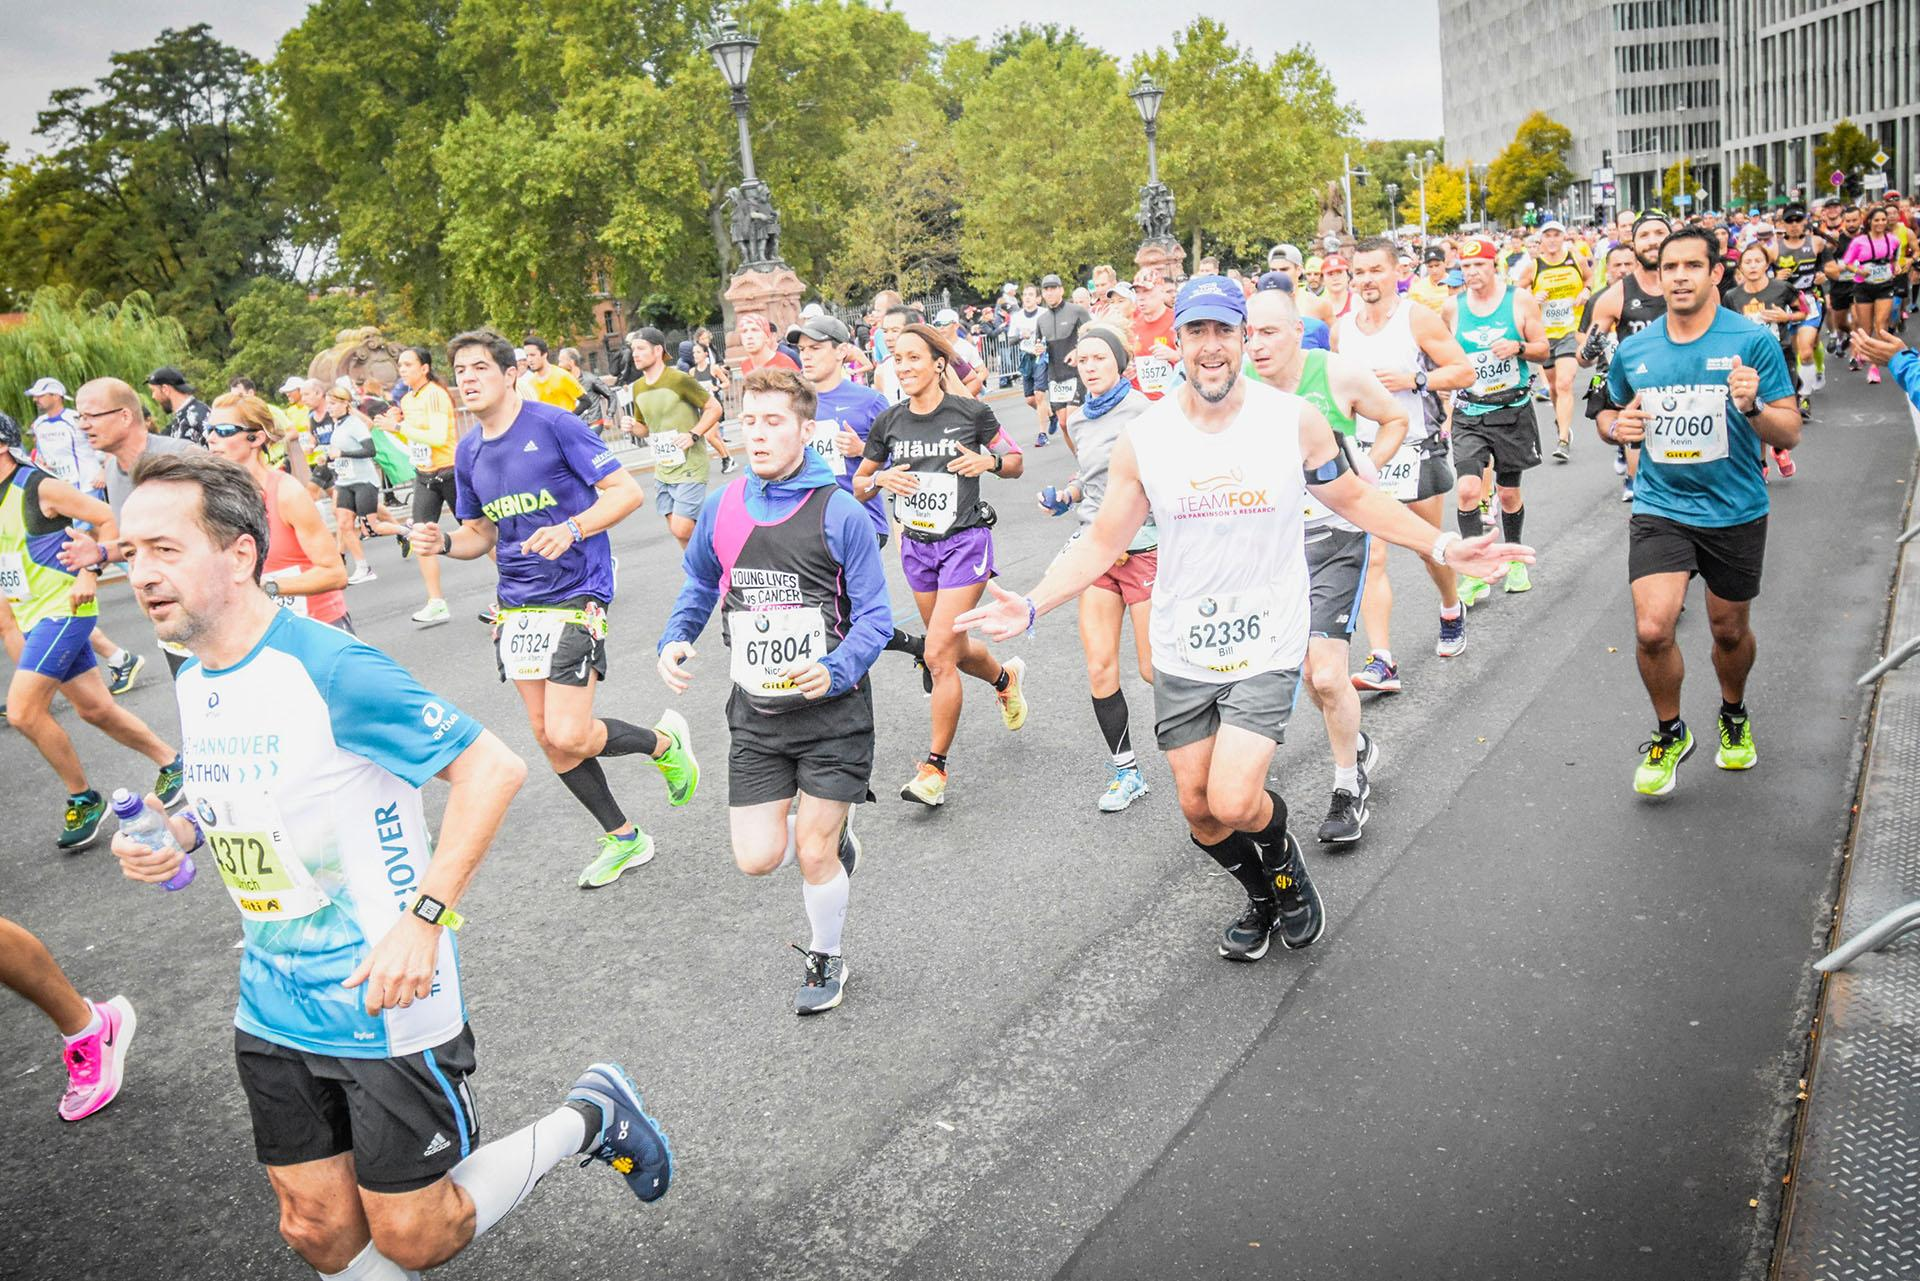 Wilmette resident Bill Bucklew, in the Team Fox tank top above, ran in the Berlin marathon on Sept. 29, 2019. Bucklew, who was diagnosed with Parkinson's disease at age 43, will run in the Chicago marathon on Sunday, Oct. 13. (Courtesy of Bill Bucklew)